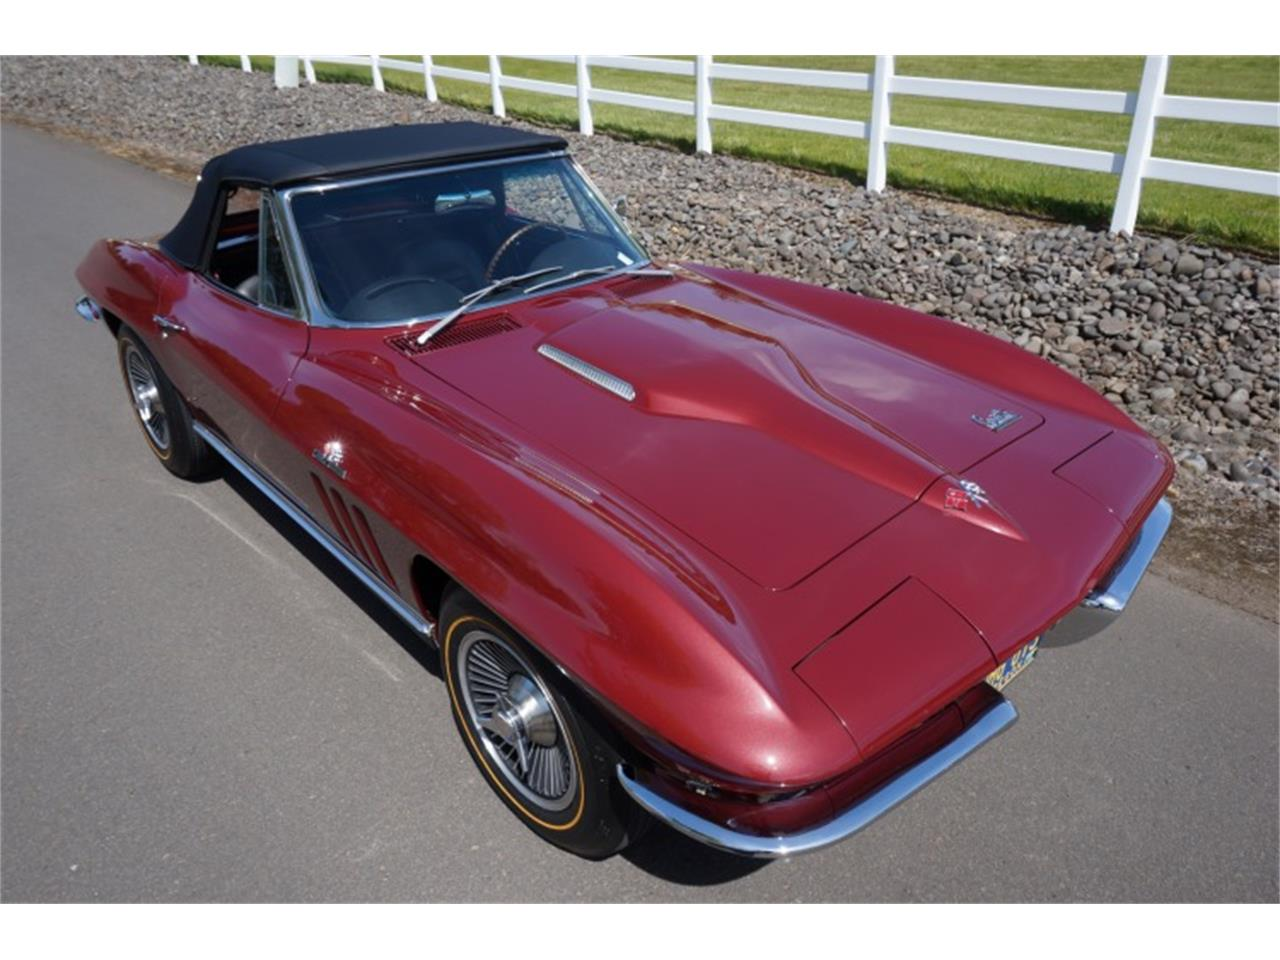 Large Picture of '66 Chevrolet Corvette located in Sparks Nevada Auction Vehicle Offered by Motorsport Auction Group - QJUW